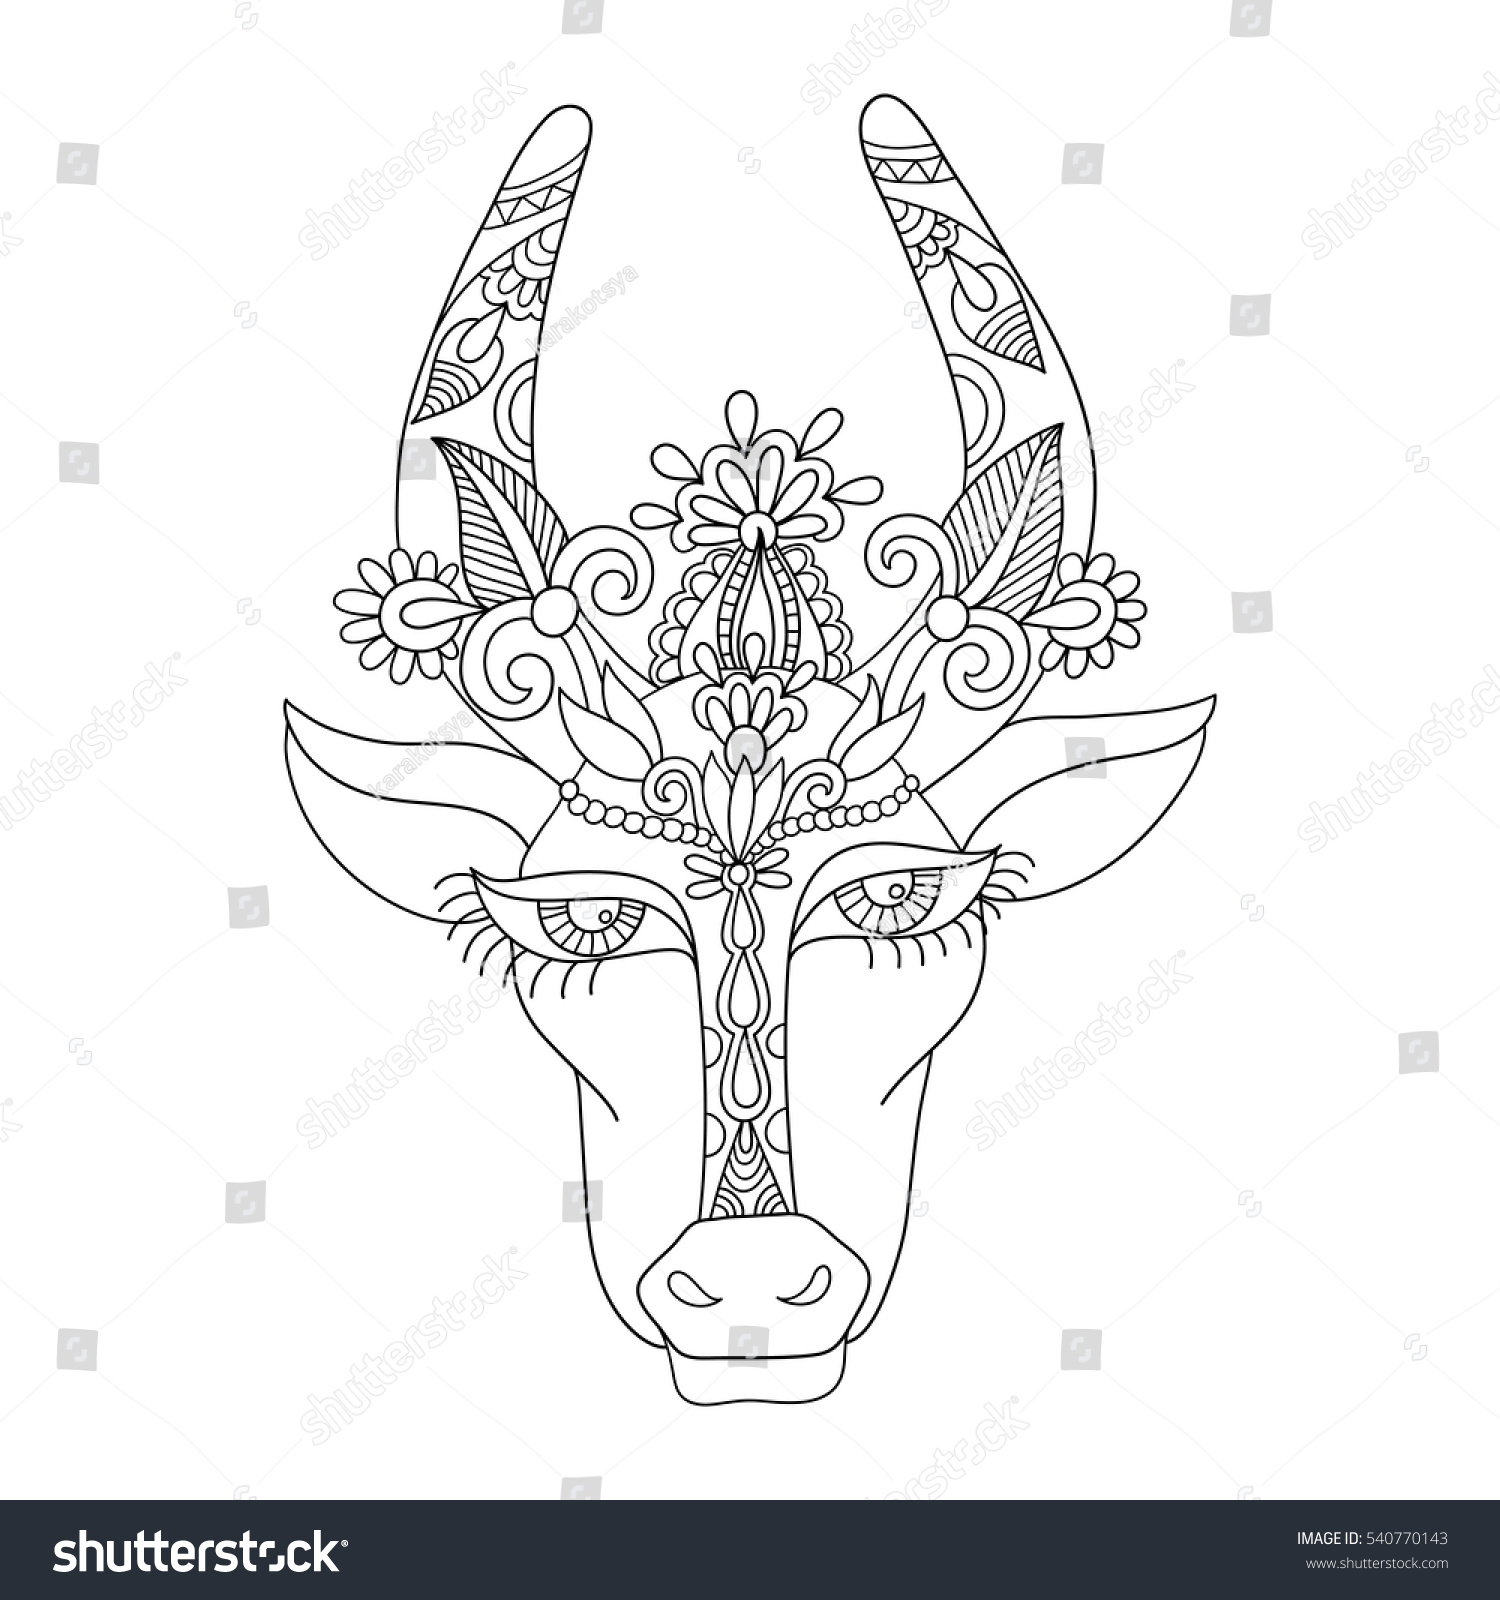 Uncategorized Drawing Of Indian line decorative drawing indian cow head stock vector 540770143 of floral stylized illustration